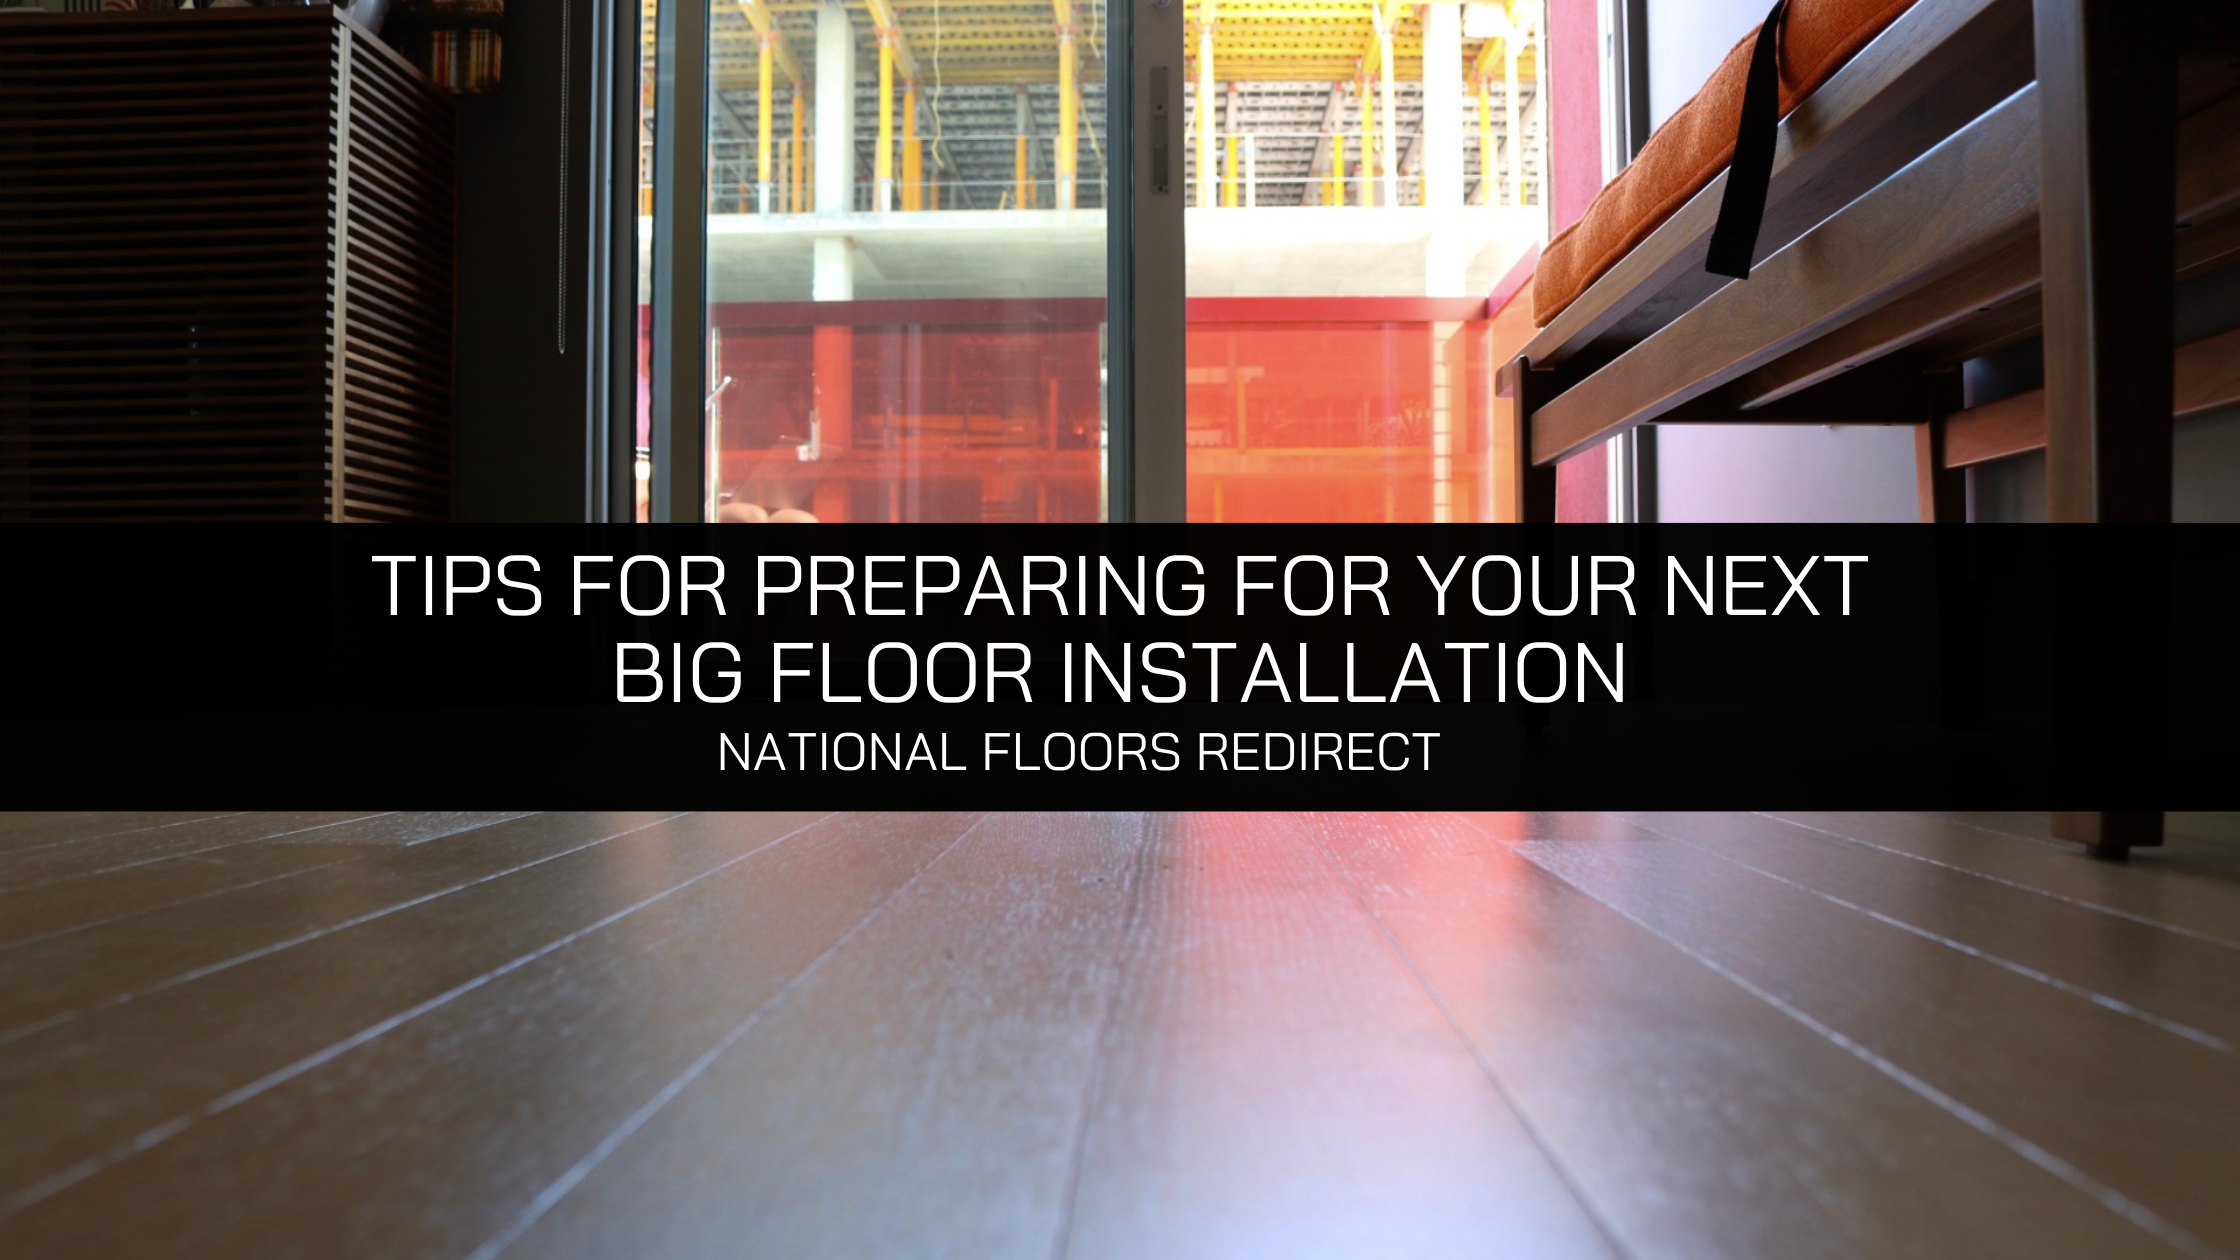 National Floors Redirect